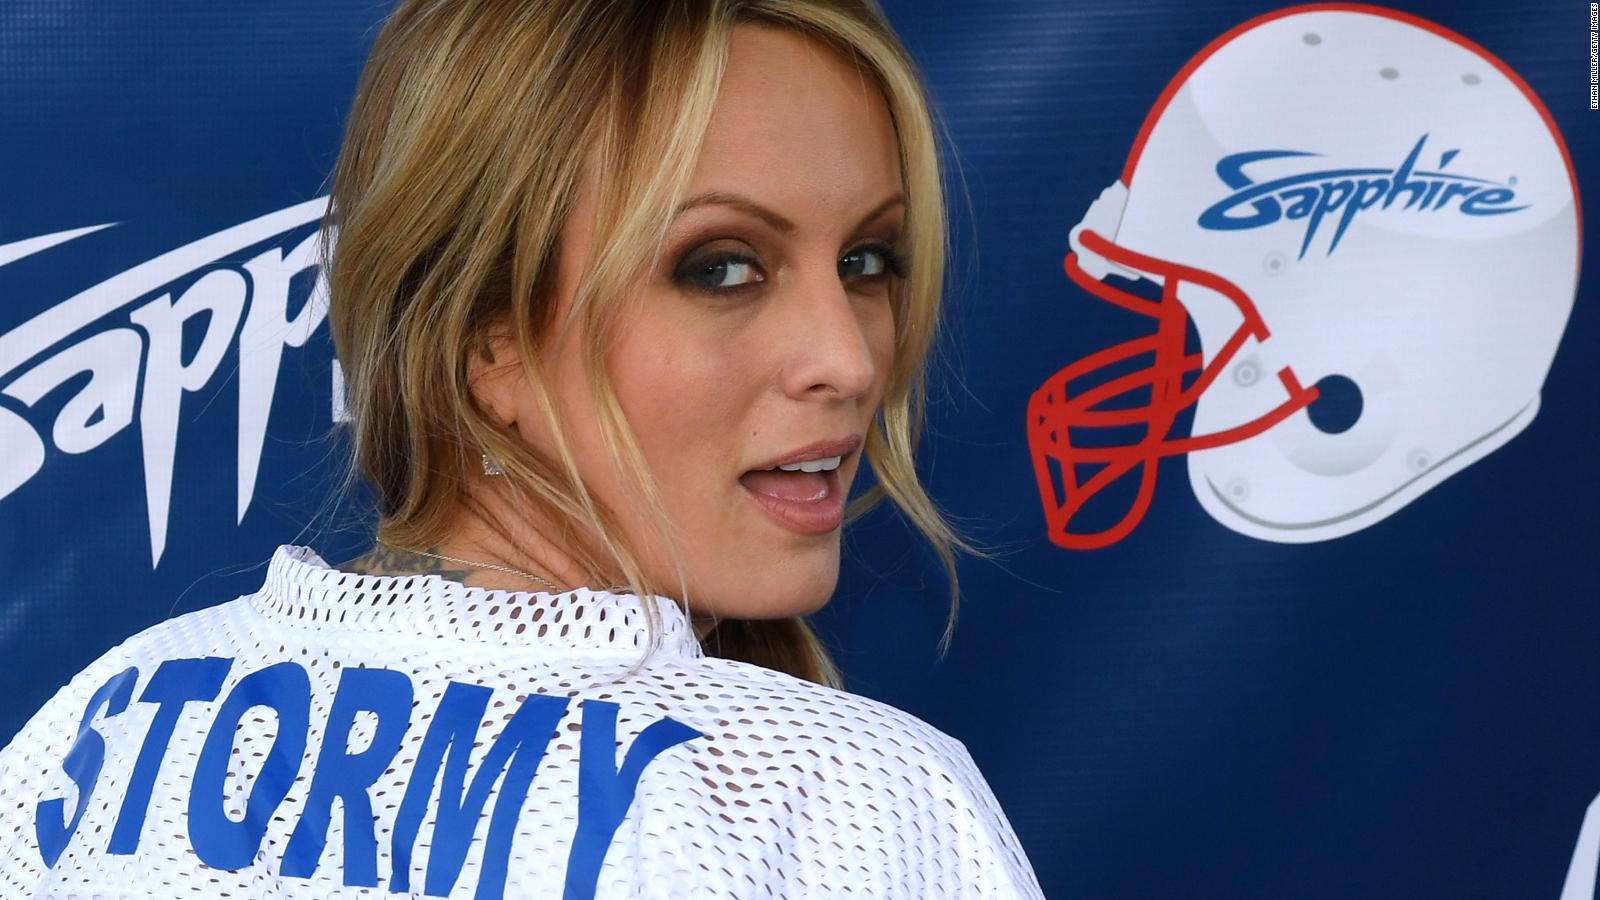 Attorneys for Trump and Cohen file to move Stormy Daniels lawsuit ...